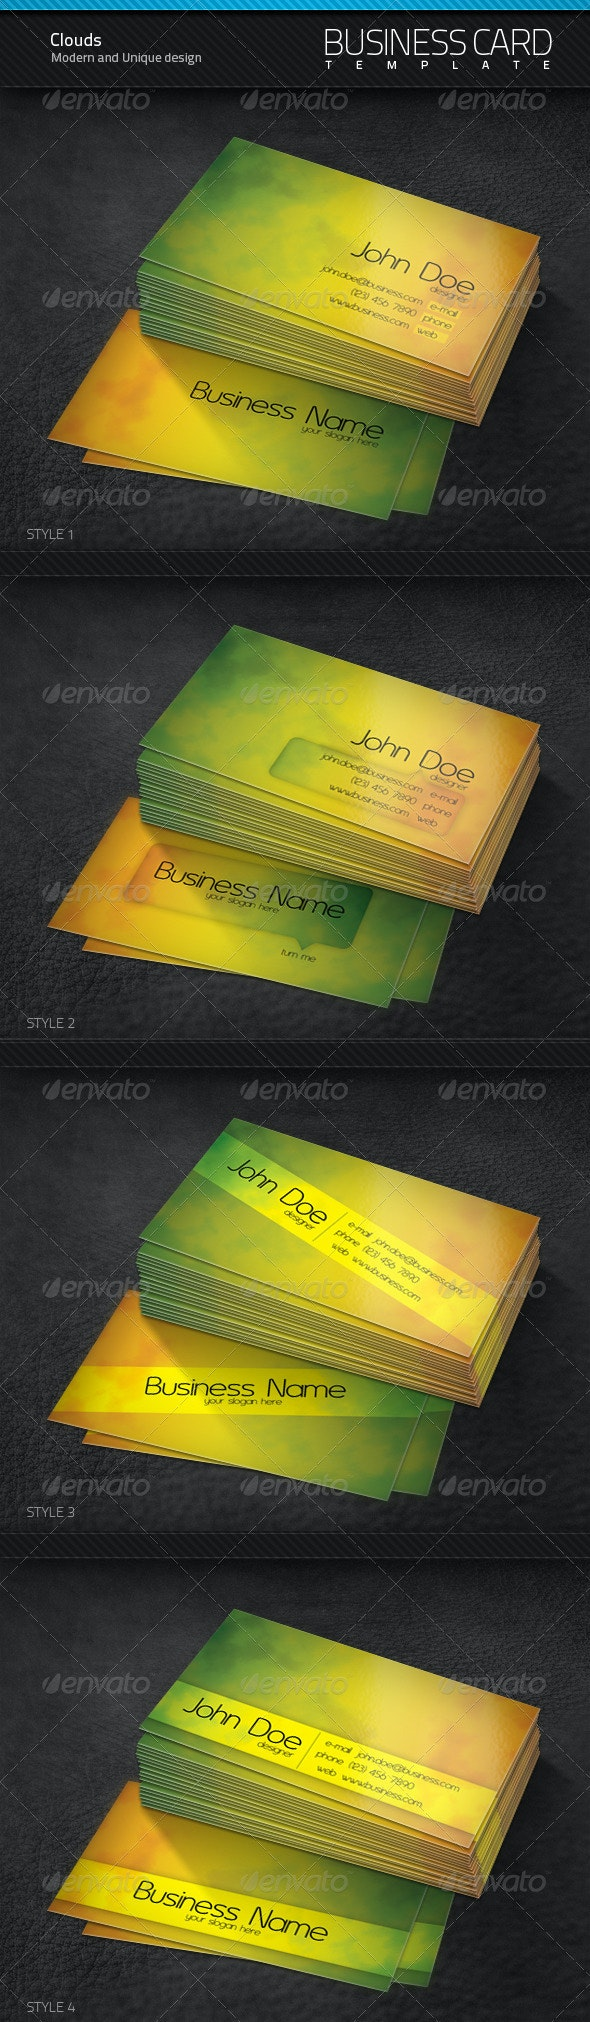 Cloud Business Cards - Creative Business Cards